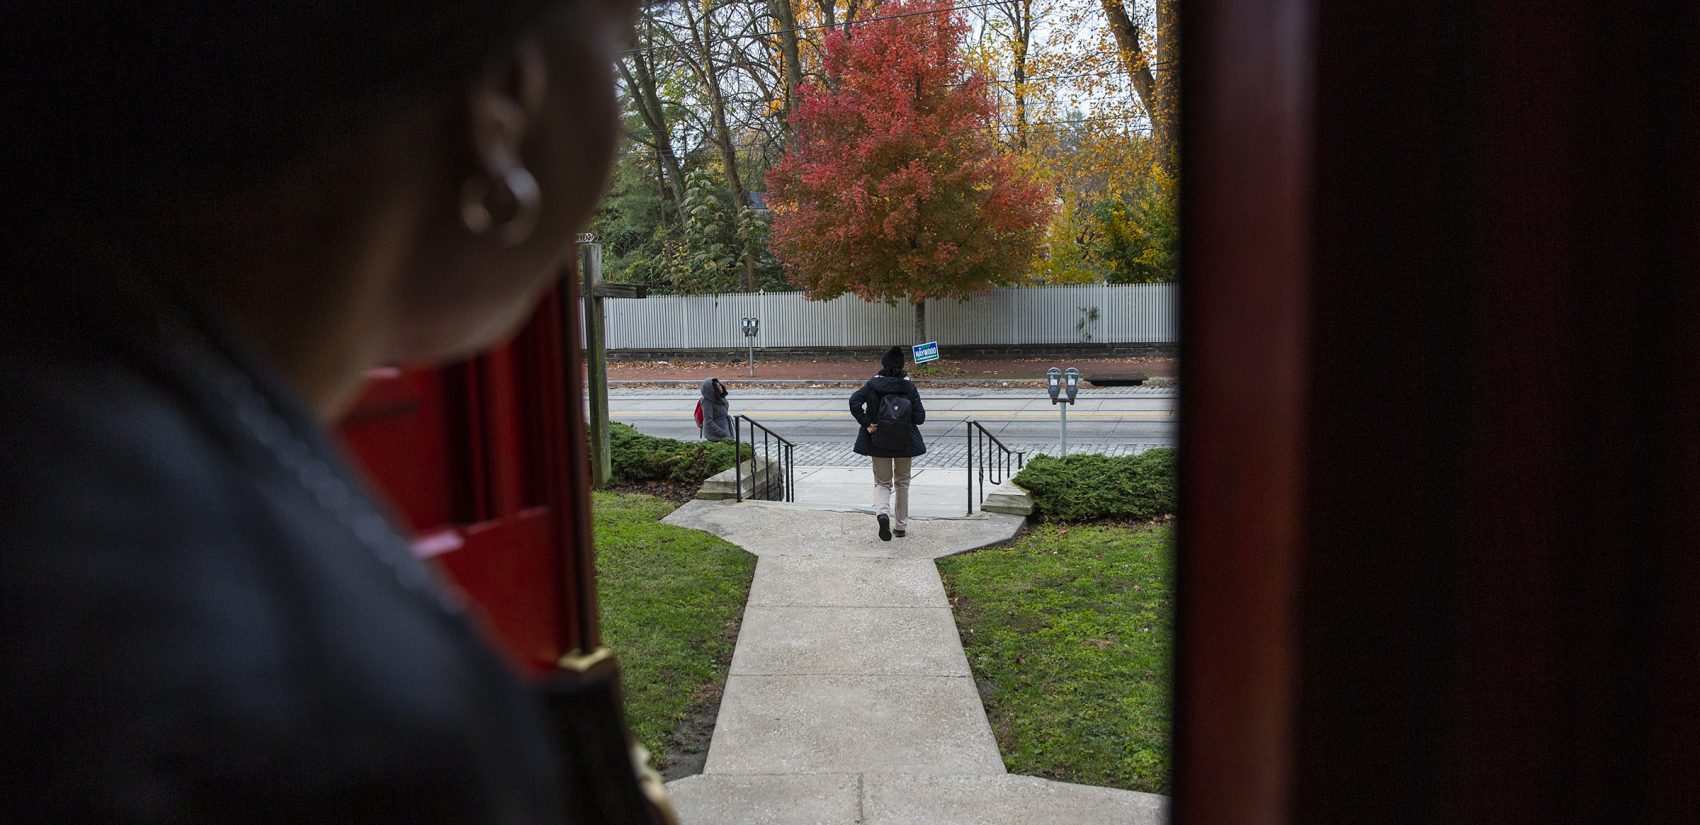 Oneita Thompson watches from the door of the First United Methodist Church of Germantown as her daughter Christine, who is 16, leaves for school on Monday, Nov. 12, 2018. (Heather Khalifa/The Philadelphia Inquirer)